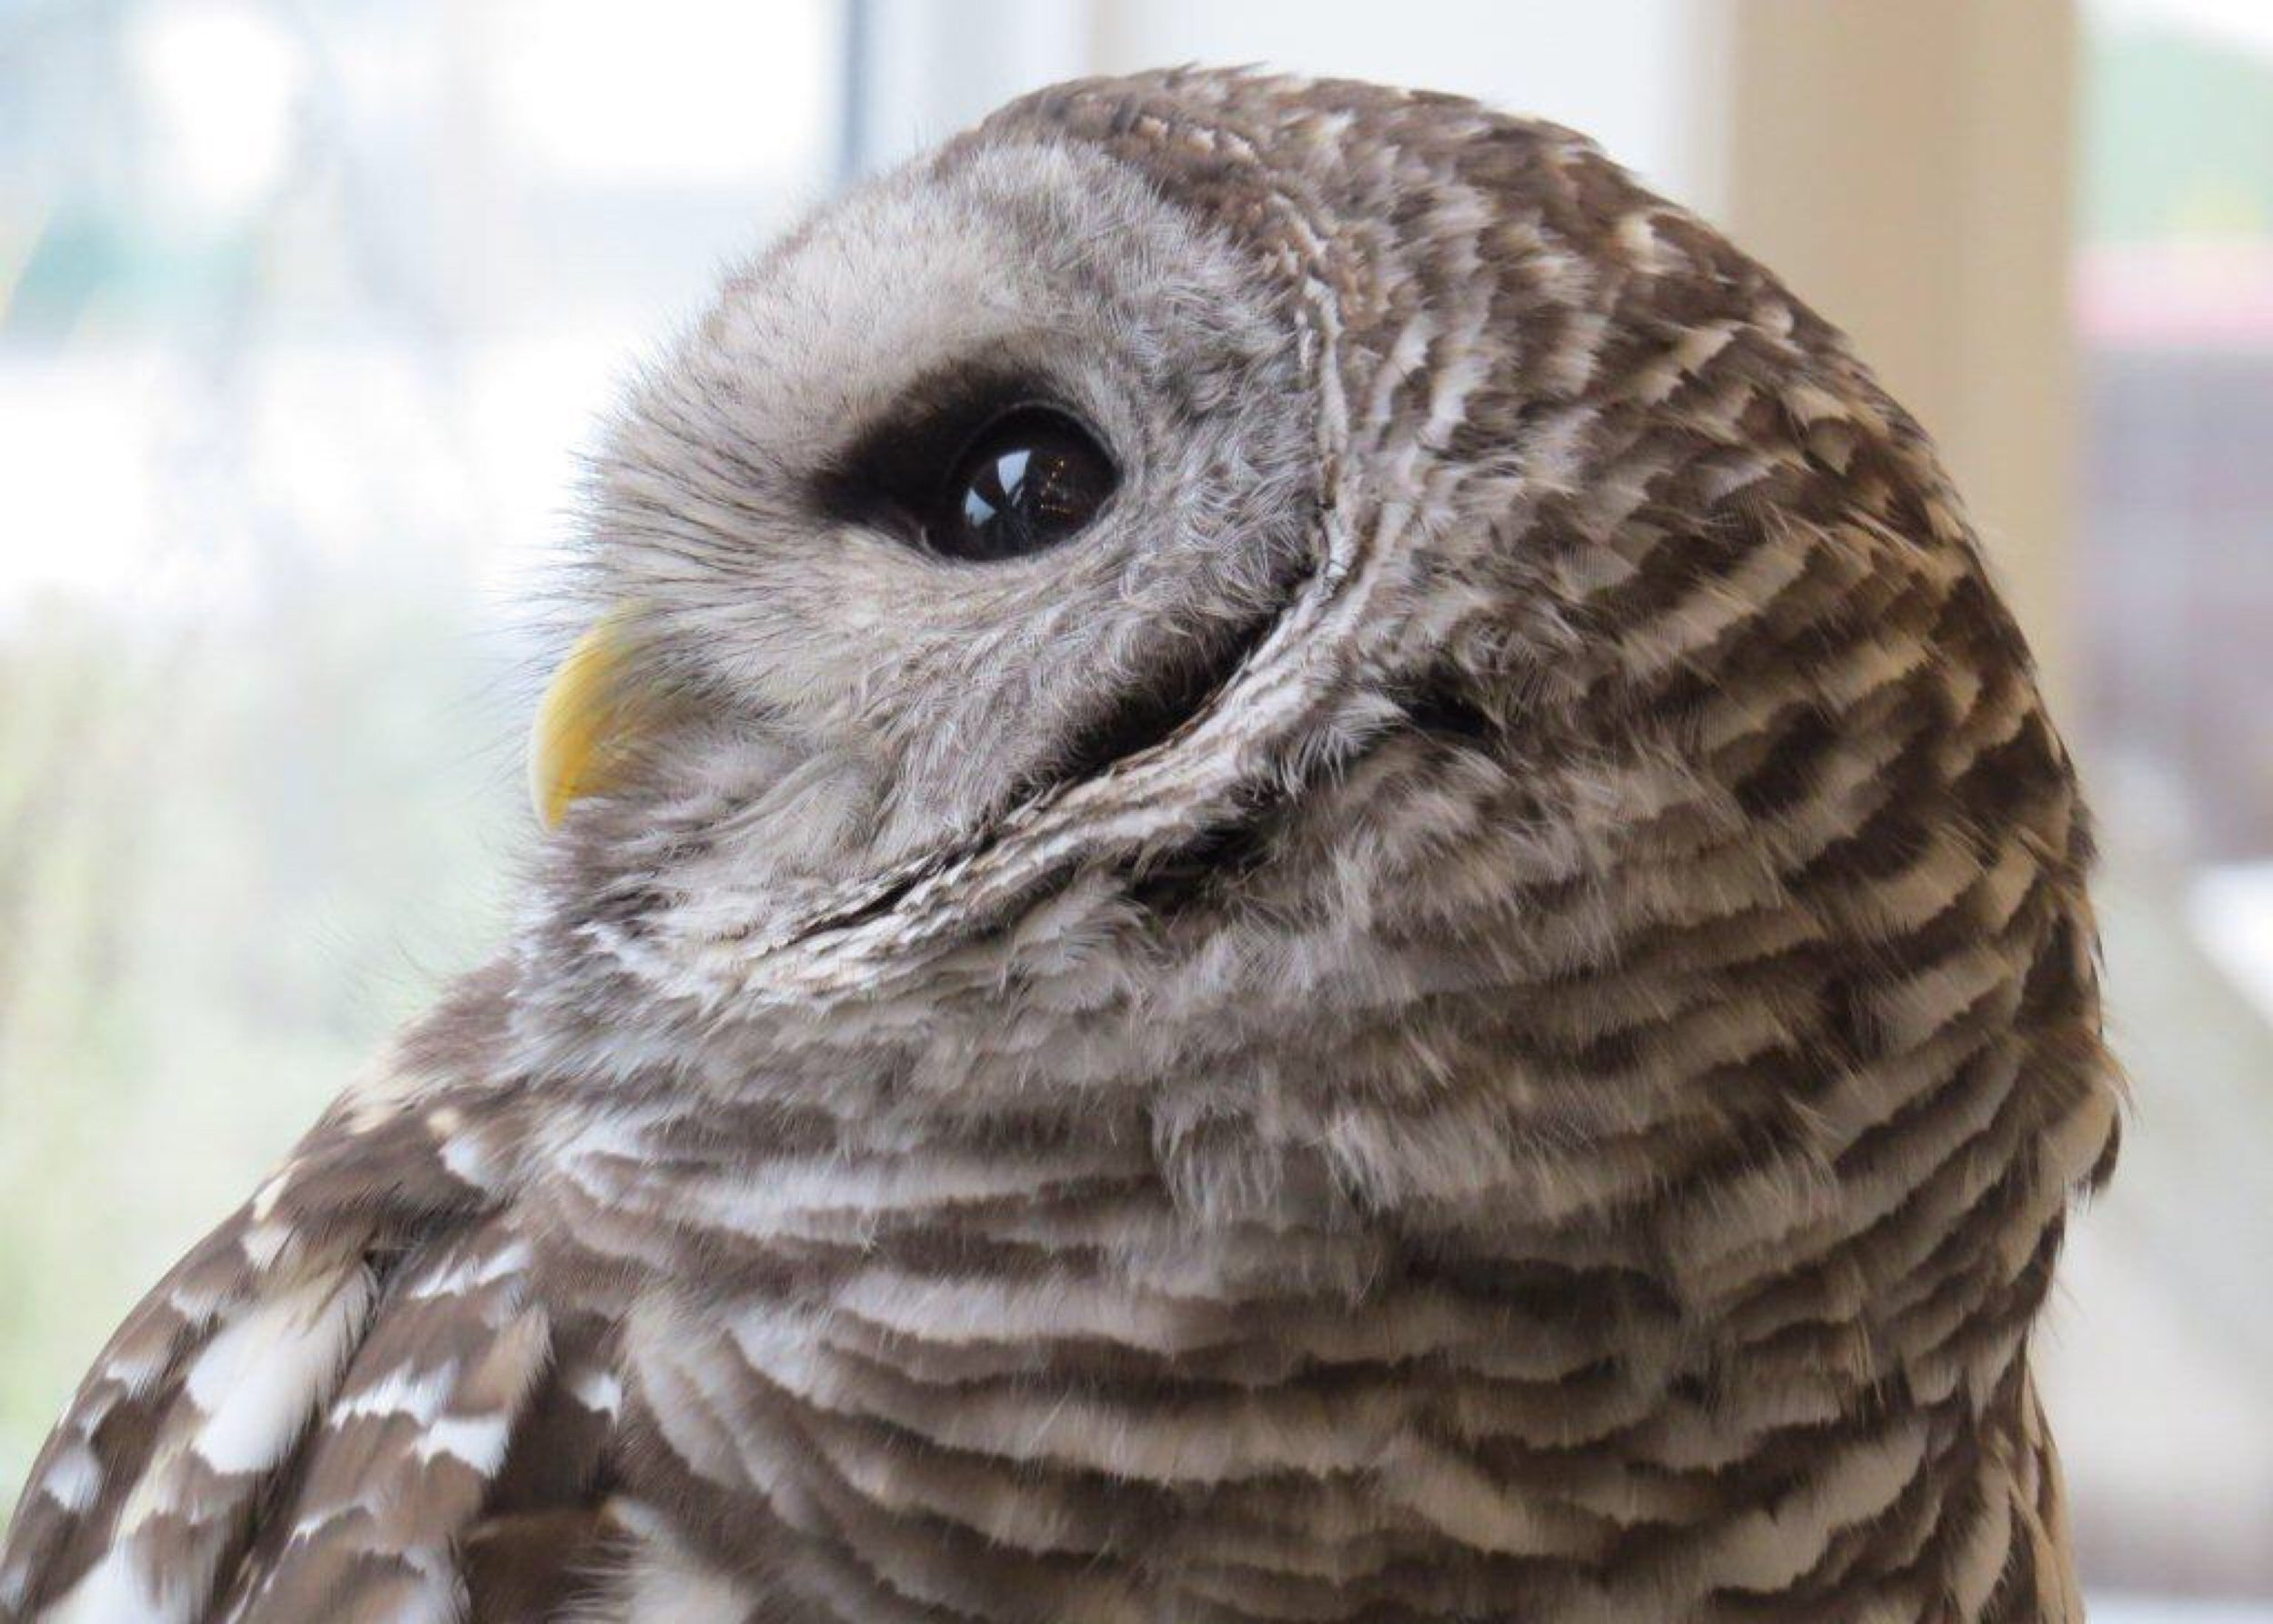 This barred owl is seeing things I can only imagine.